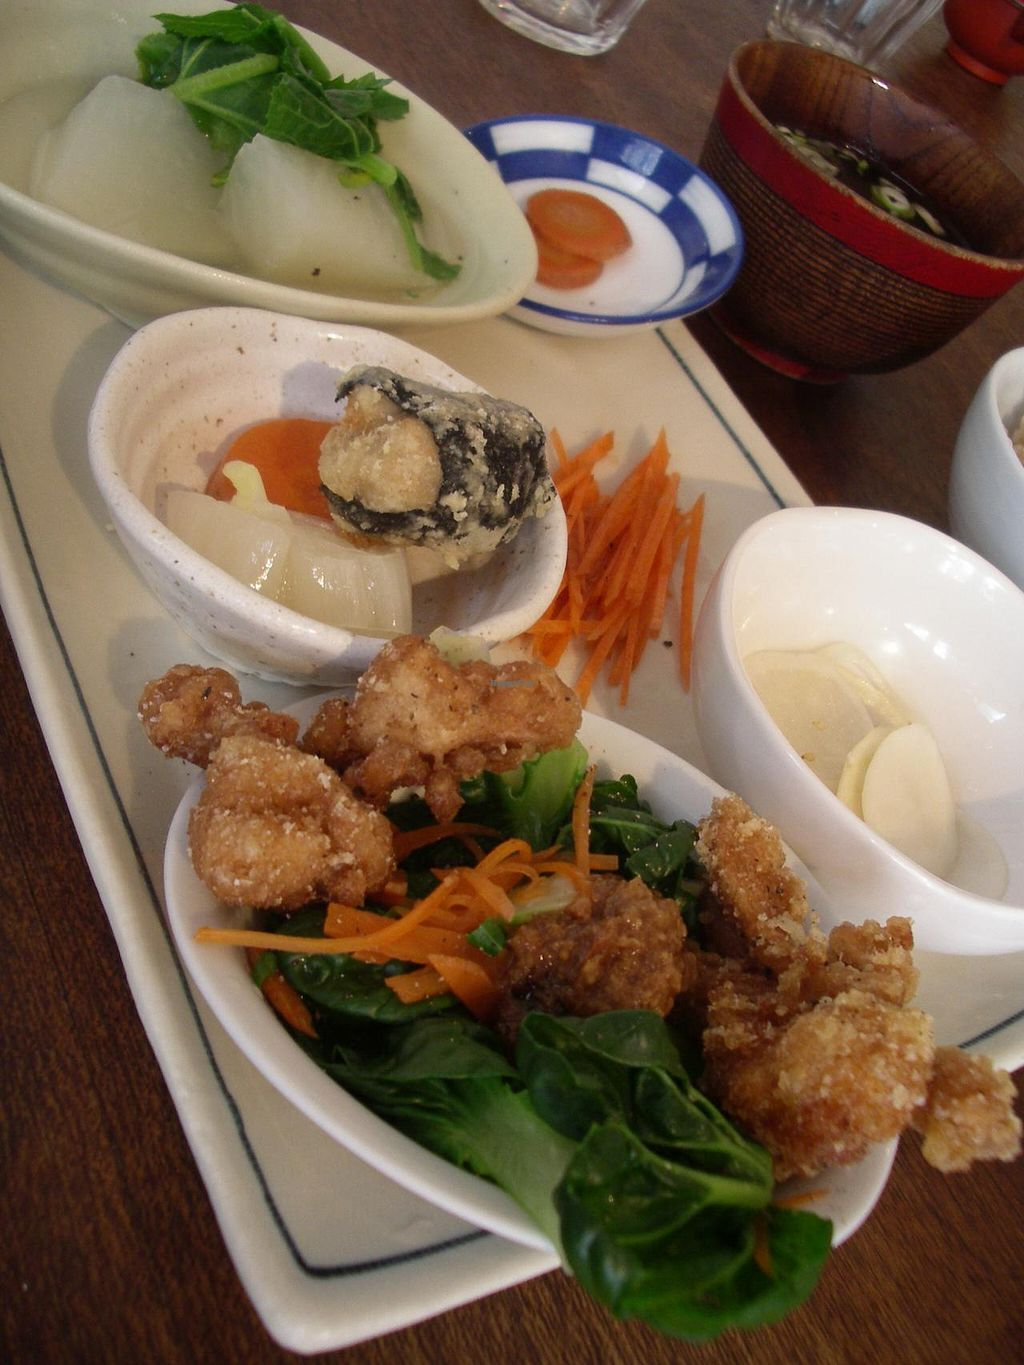 """Photo of CLOSED: Aburaage  by <a href=""""/members/profile/Ricardo"""">Ricardo</a> <br/>Lunch plate 980yen <br/> February 10, 2014  - <a href='/contact/abuse/image/45117/64063'>Report</a>"""